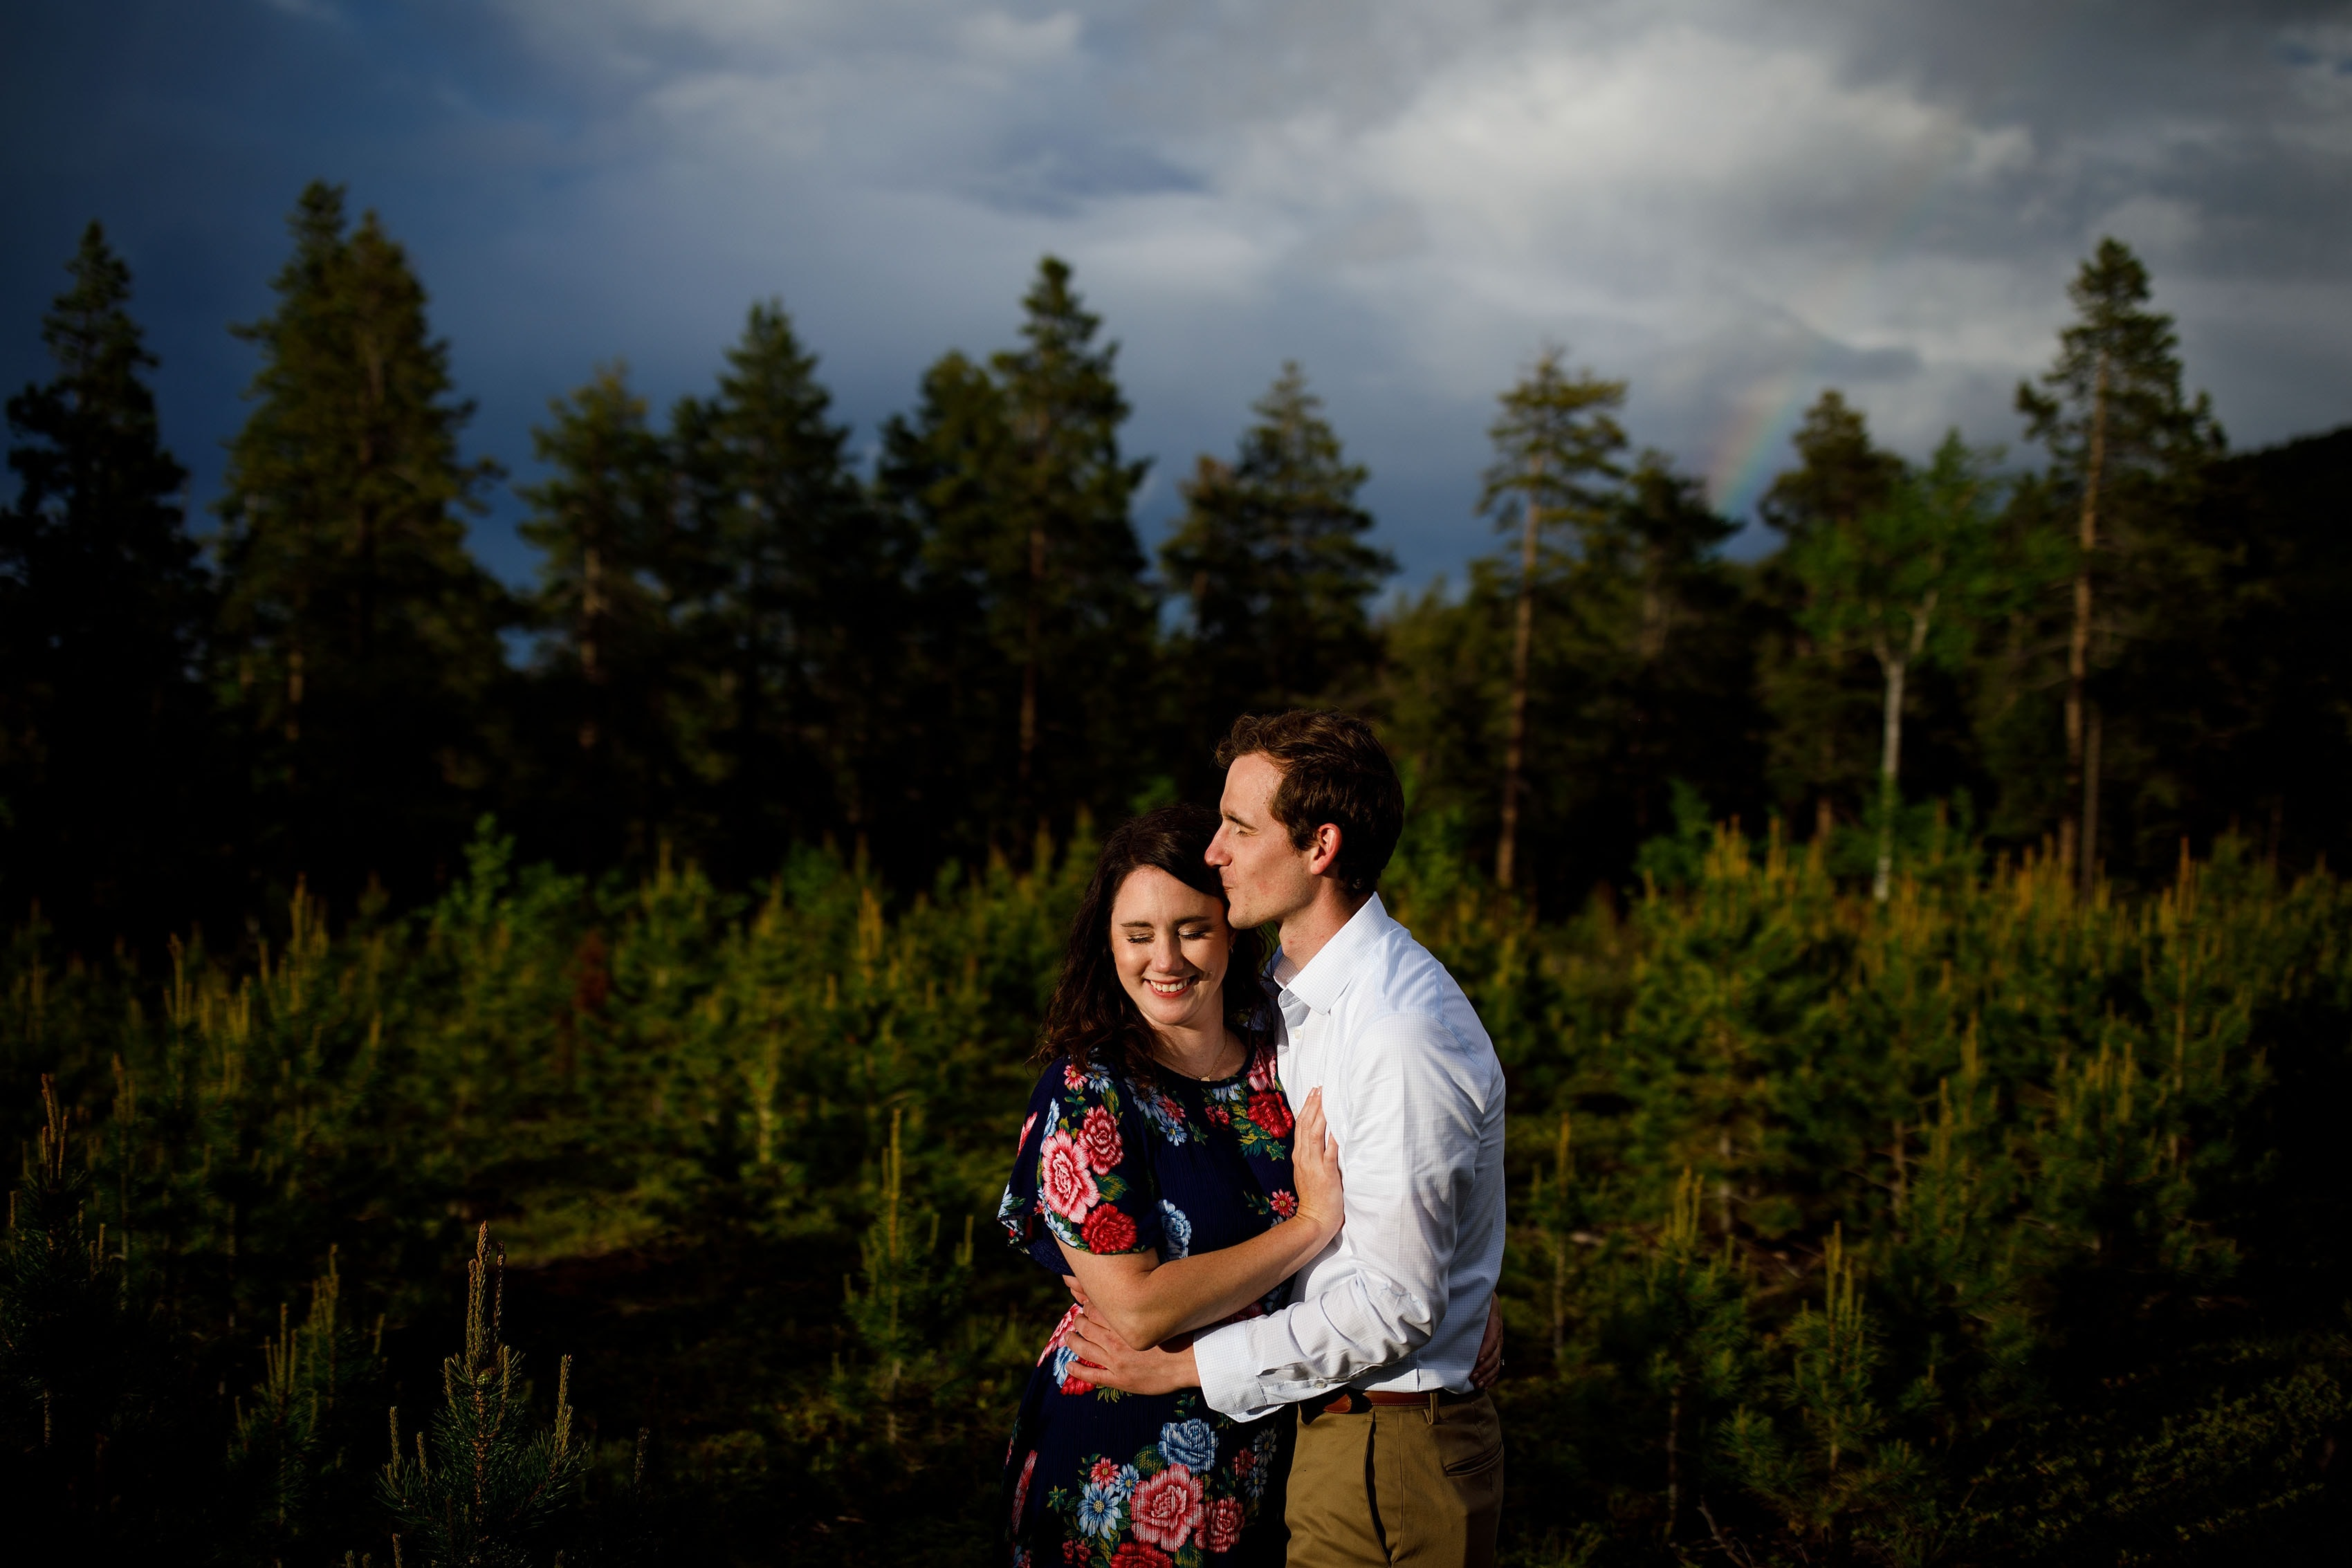 Matthew and Meaghan share a moment near the Maxwell falls trailhead in Evergreen during their engagement photos